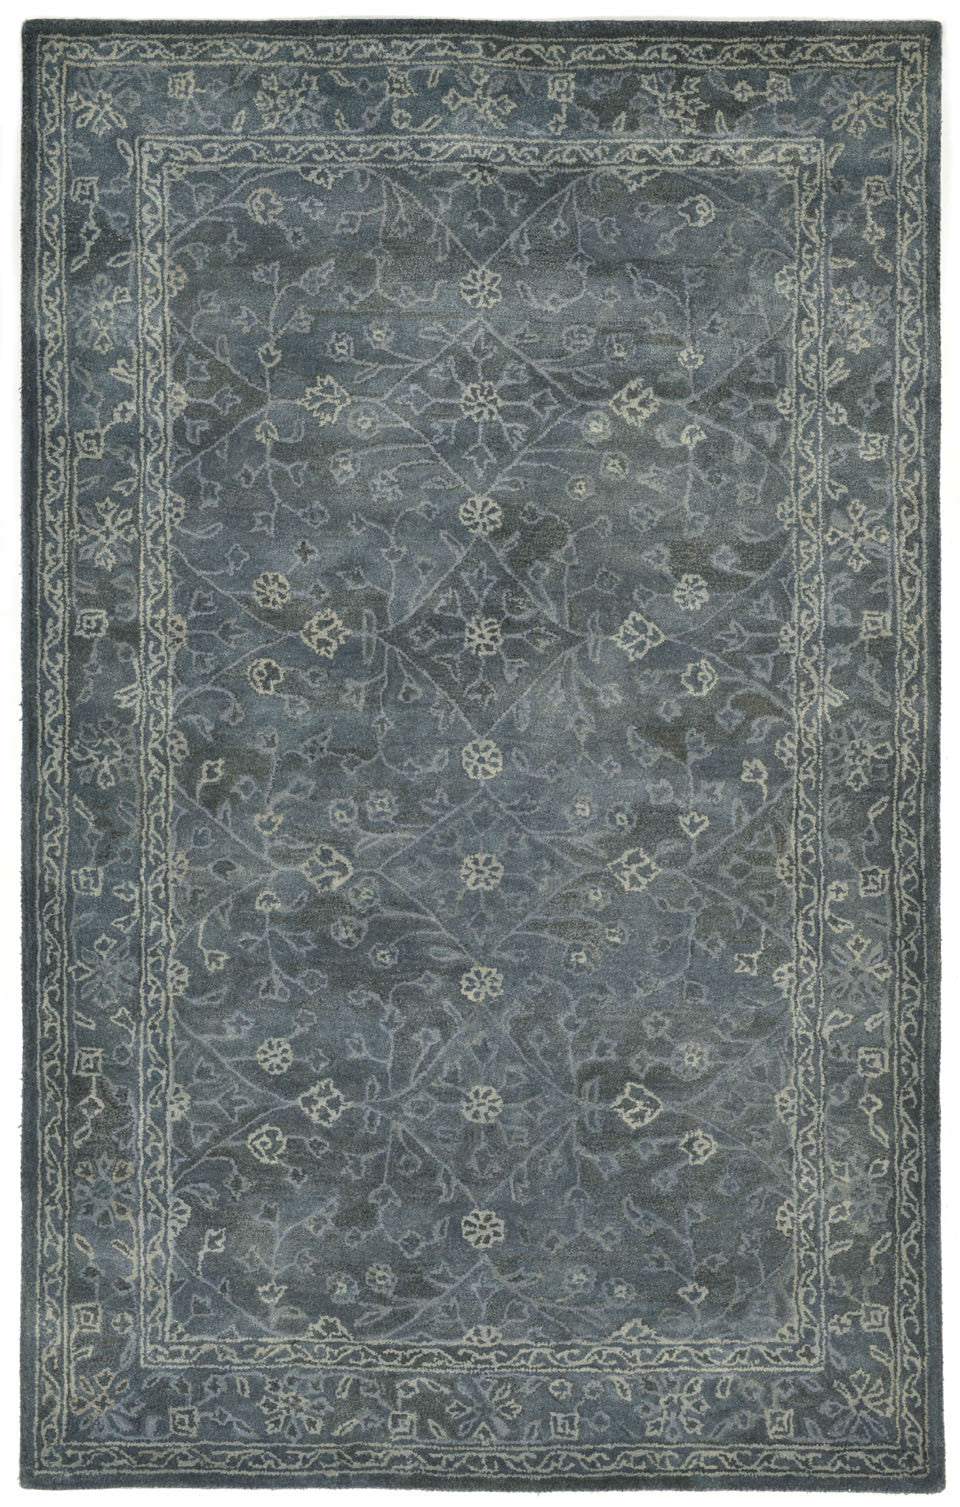 Trans-Ocean Imports GOA58826203 Goa Collection Blue Finish Indoor Rug from Trans-Ocean